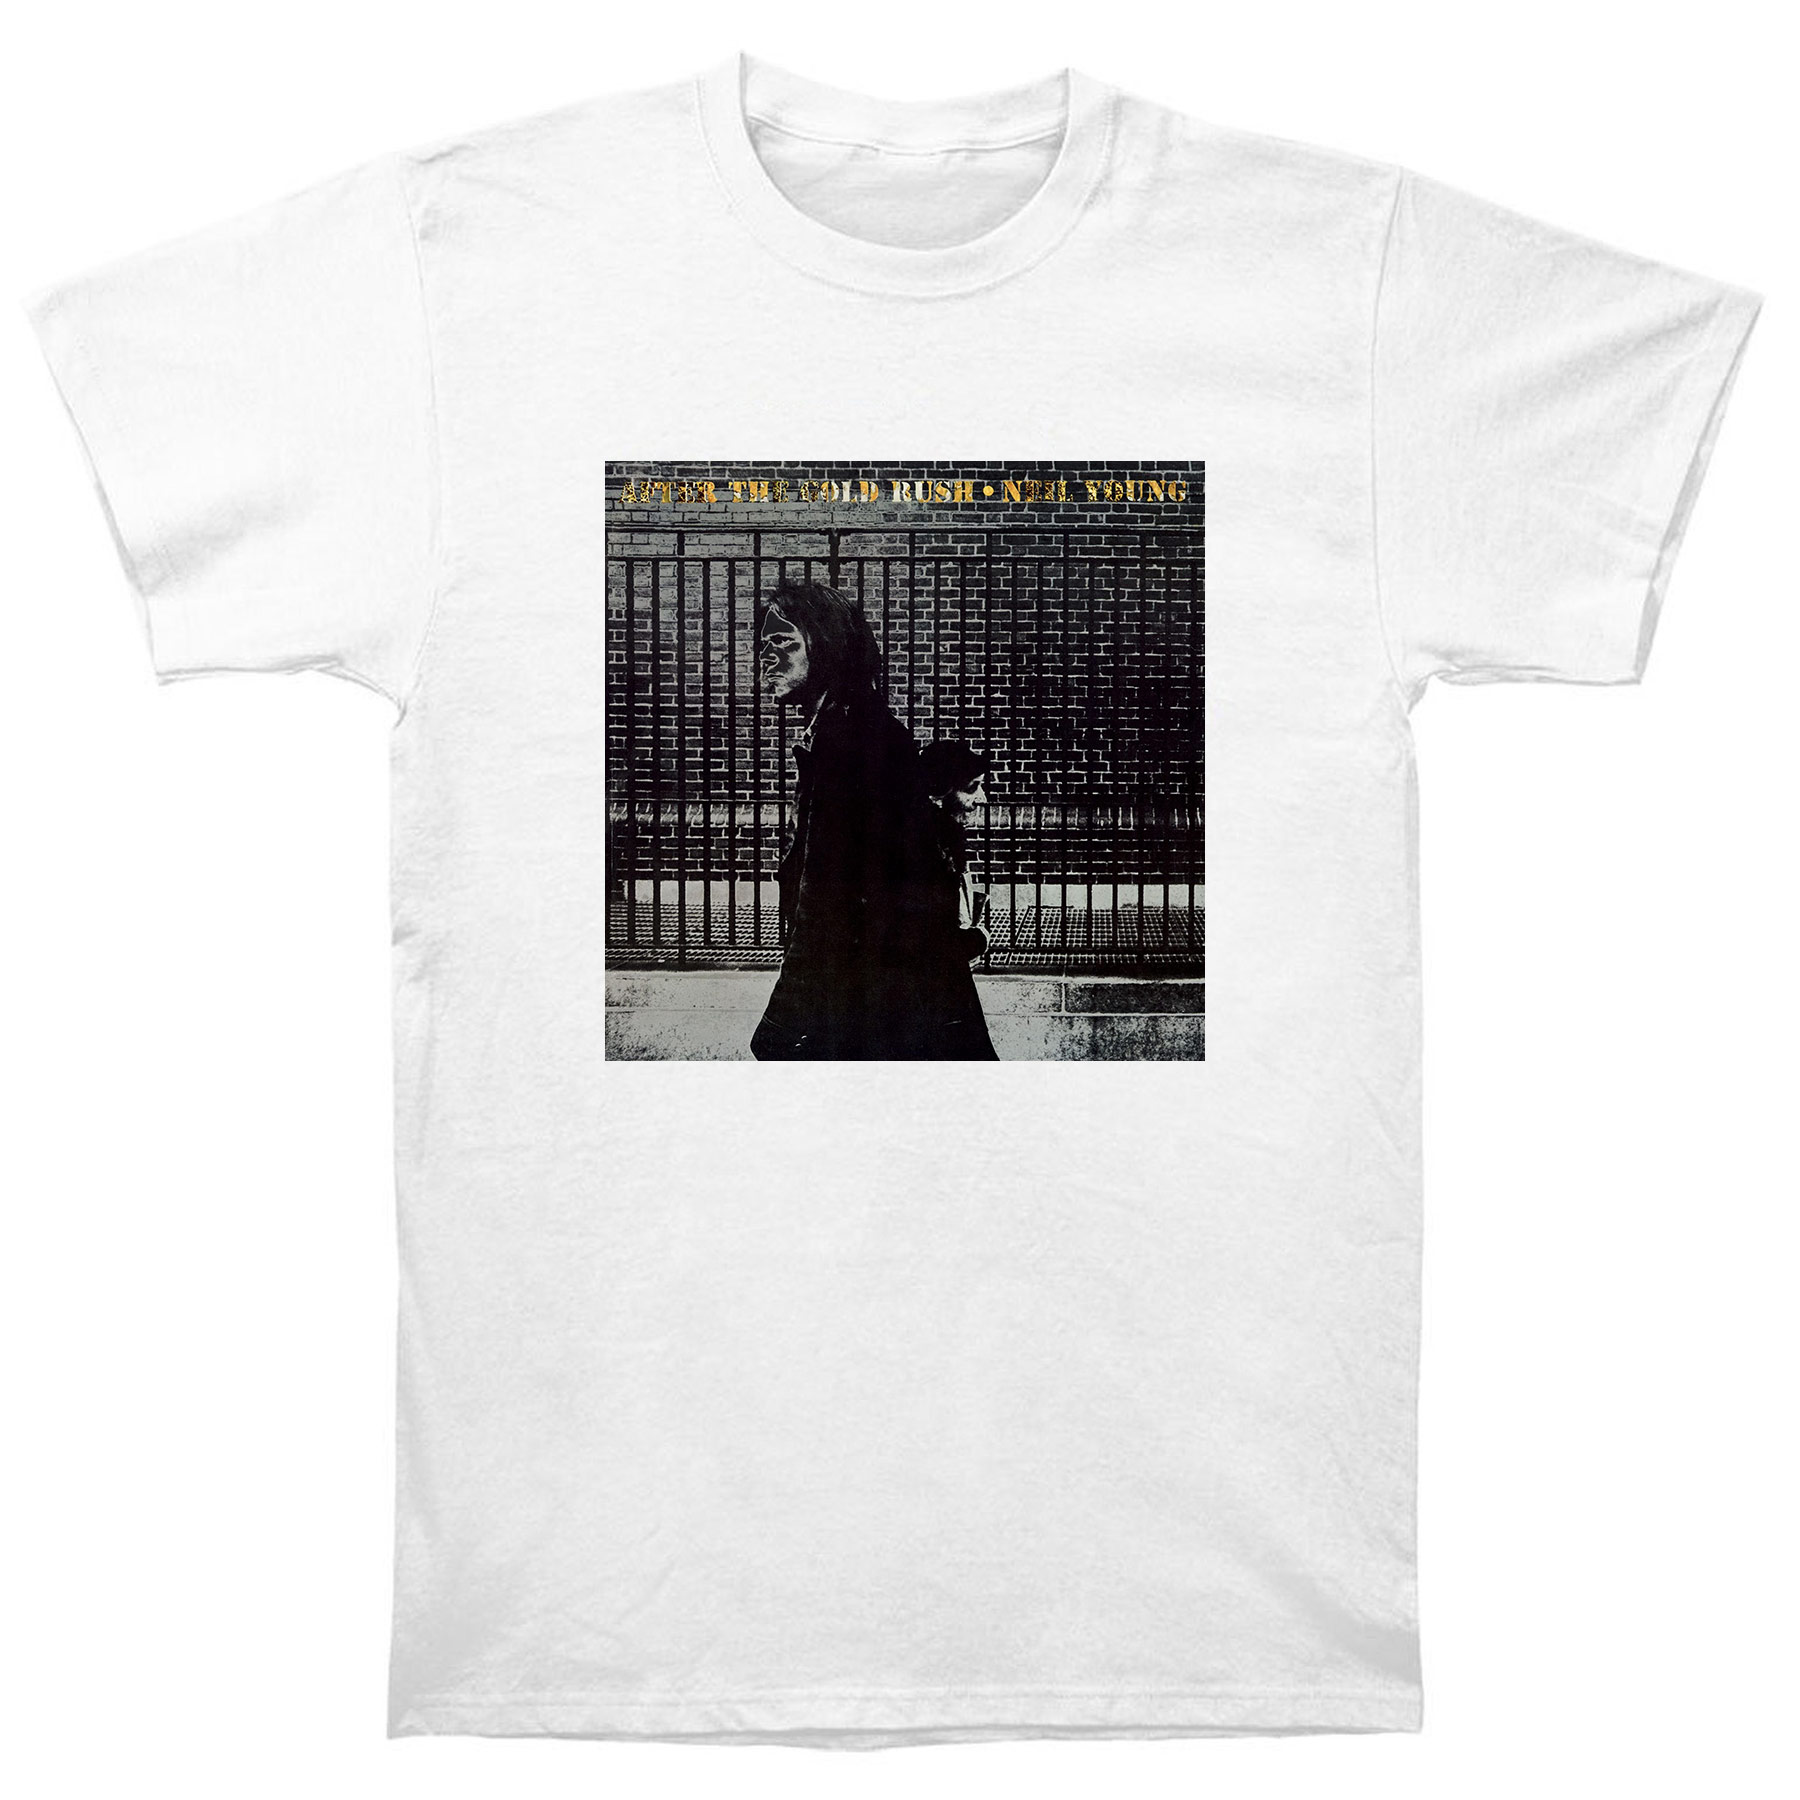 Jay z black t shirt white cross - Neil Young After The Gold Rush T Shirt China Mainland